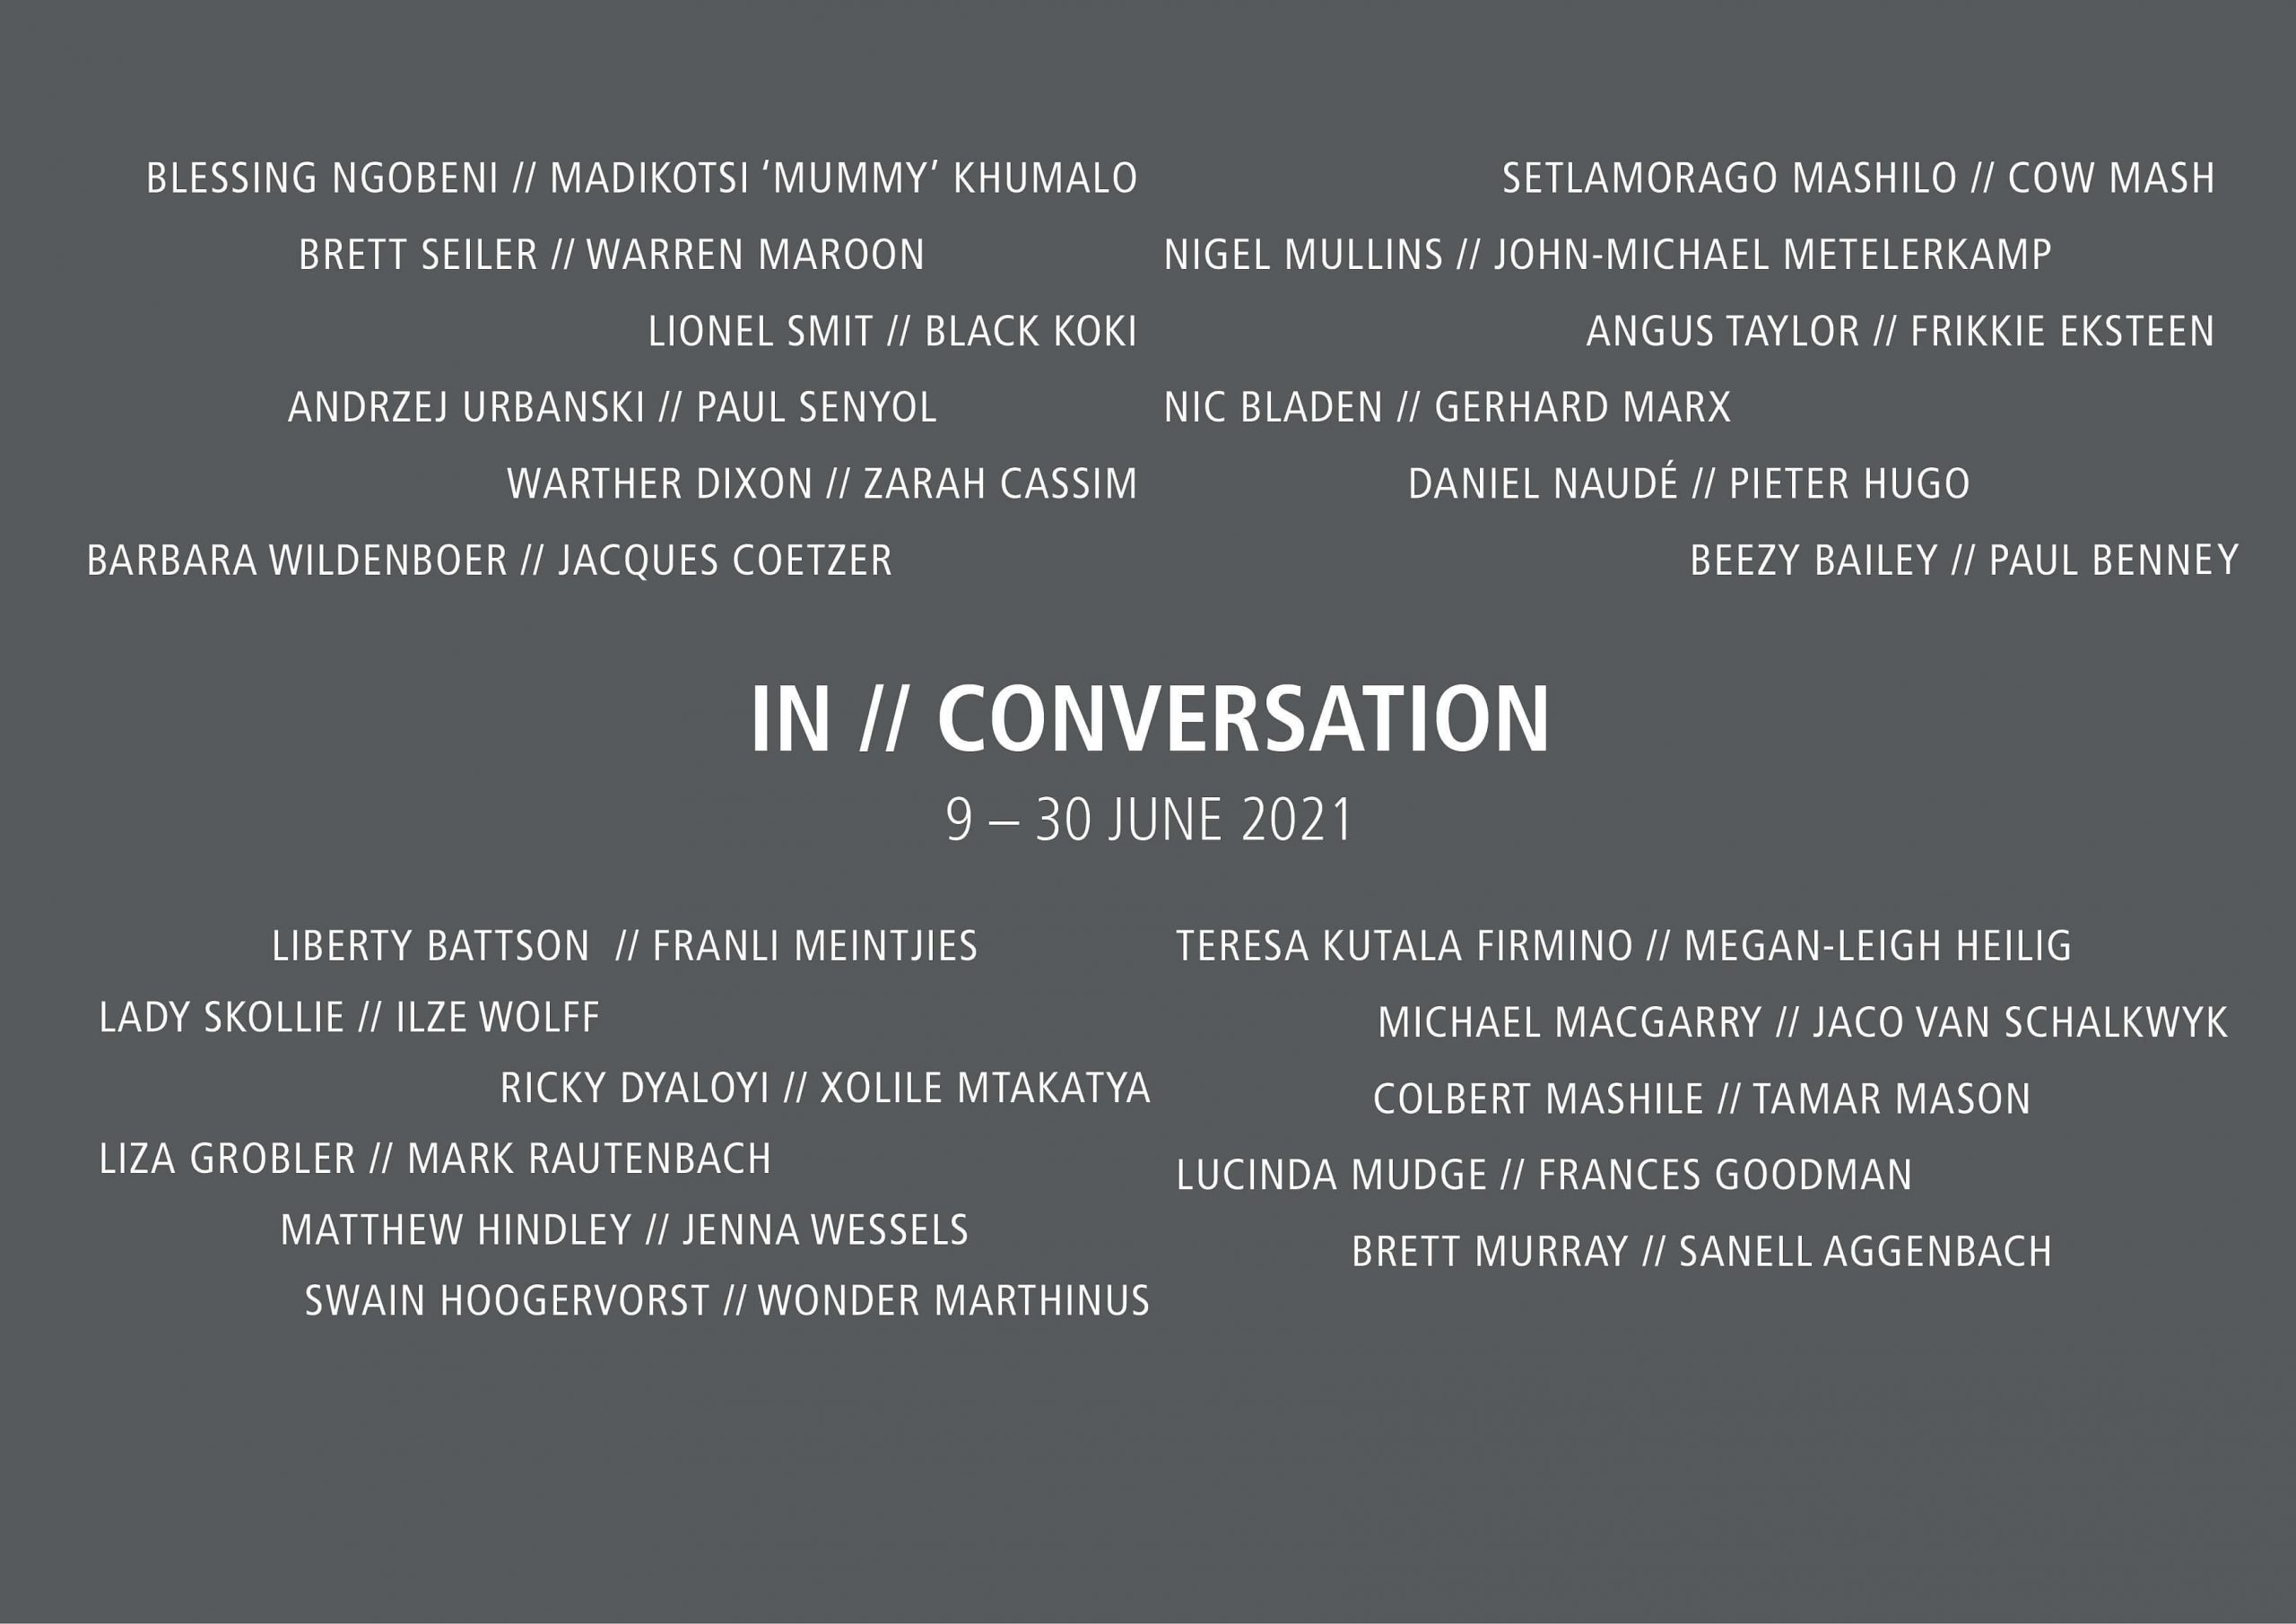 in-conversation-group-exhibition-cape-town-art-and-about-africa